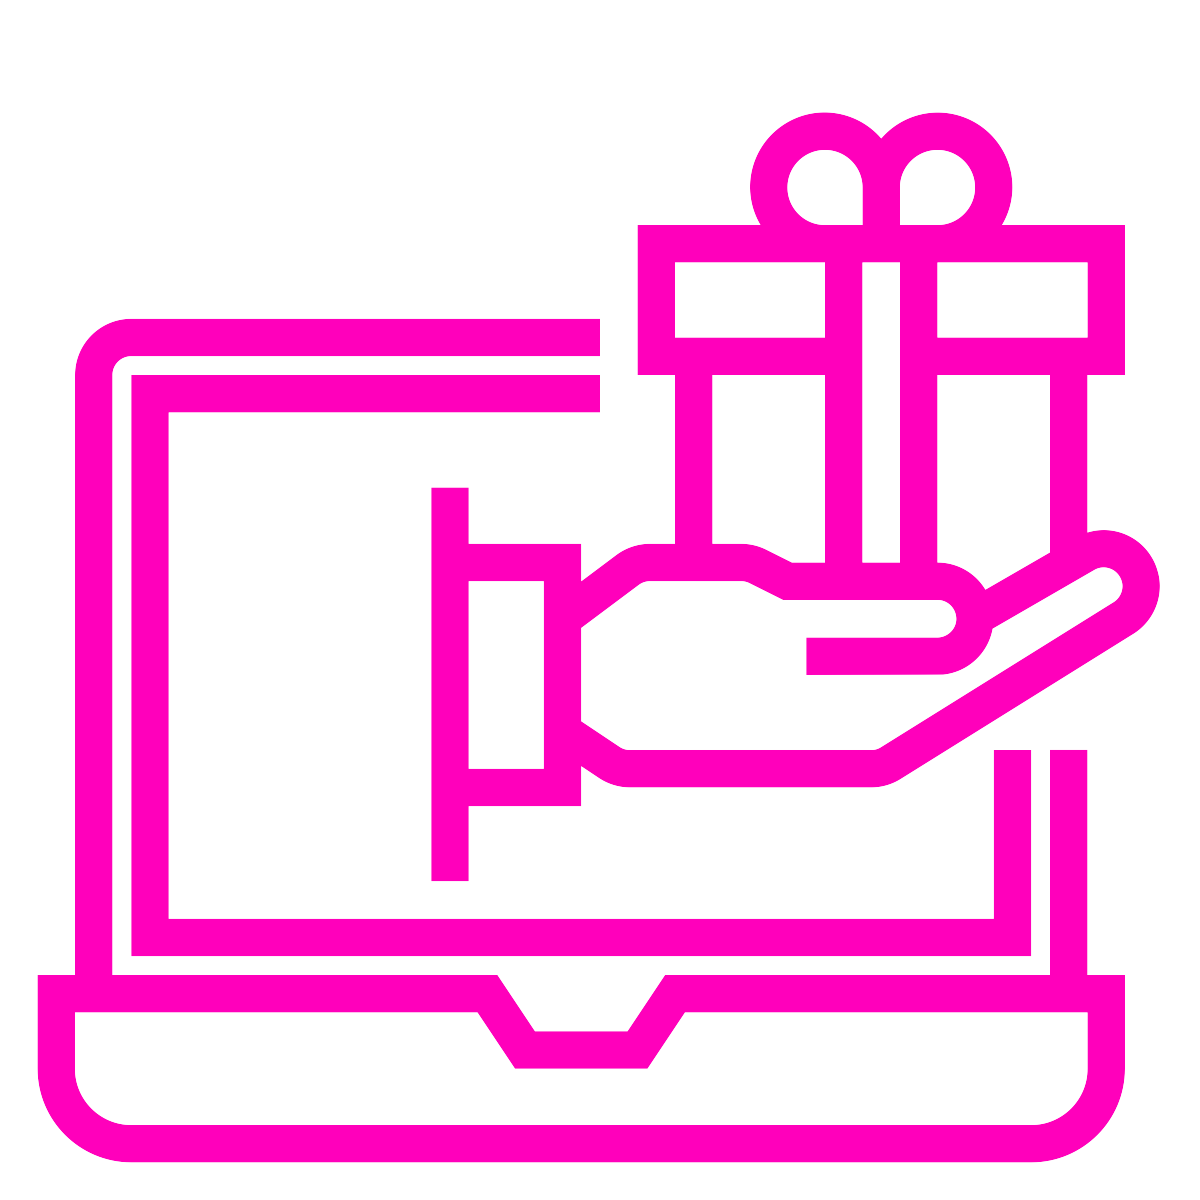 line drawing of a hand holding a wrapped gift coming out of a laptop screen - colour is dark pink